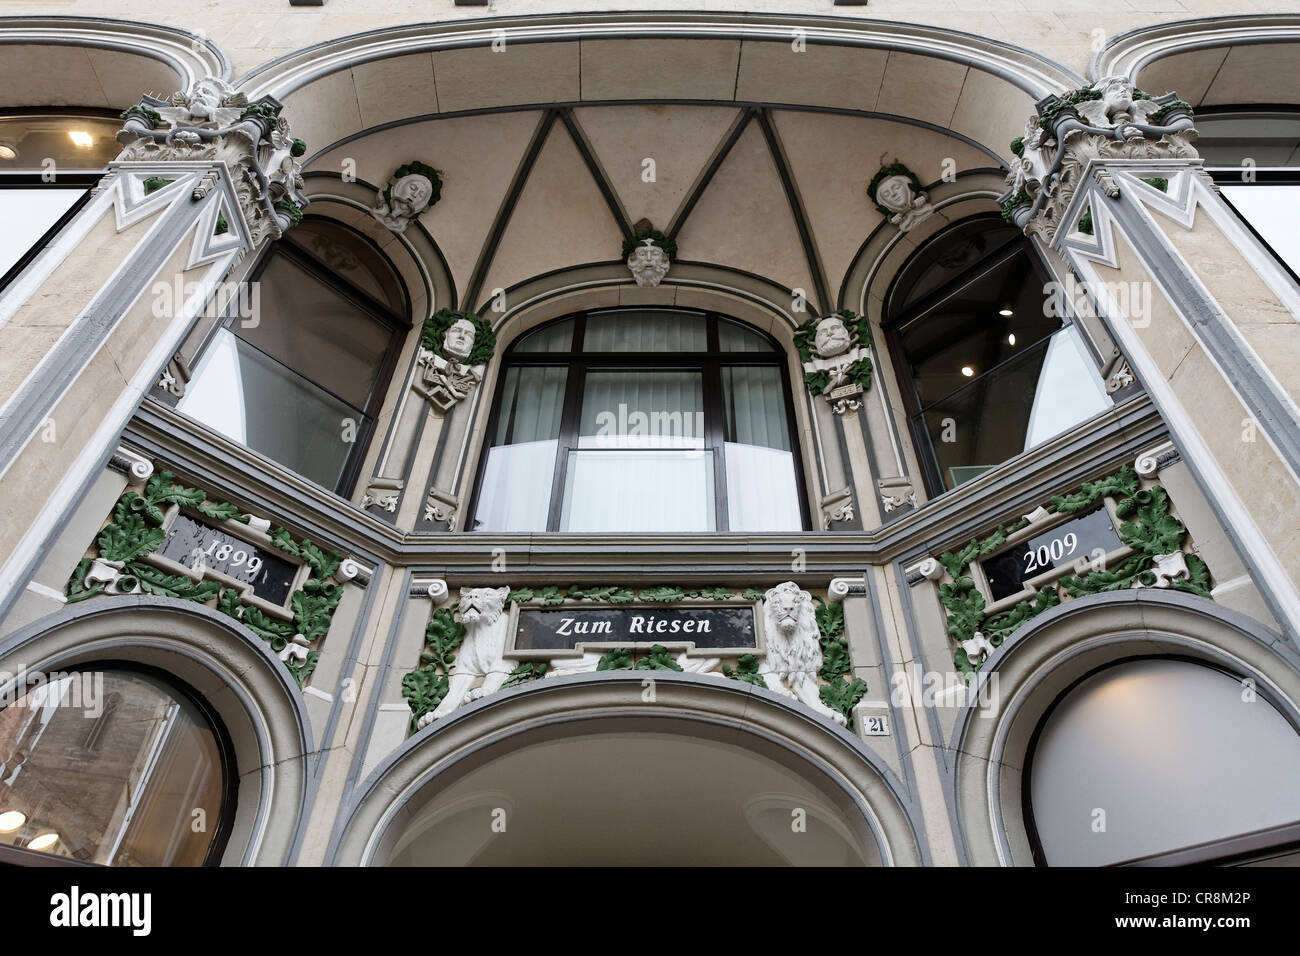 Entrance to the 'Haus zum Riesen' office and commercial building, art nouveau facade, Anger, Erfurt, Thuringia, - Stock Image